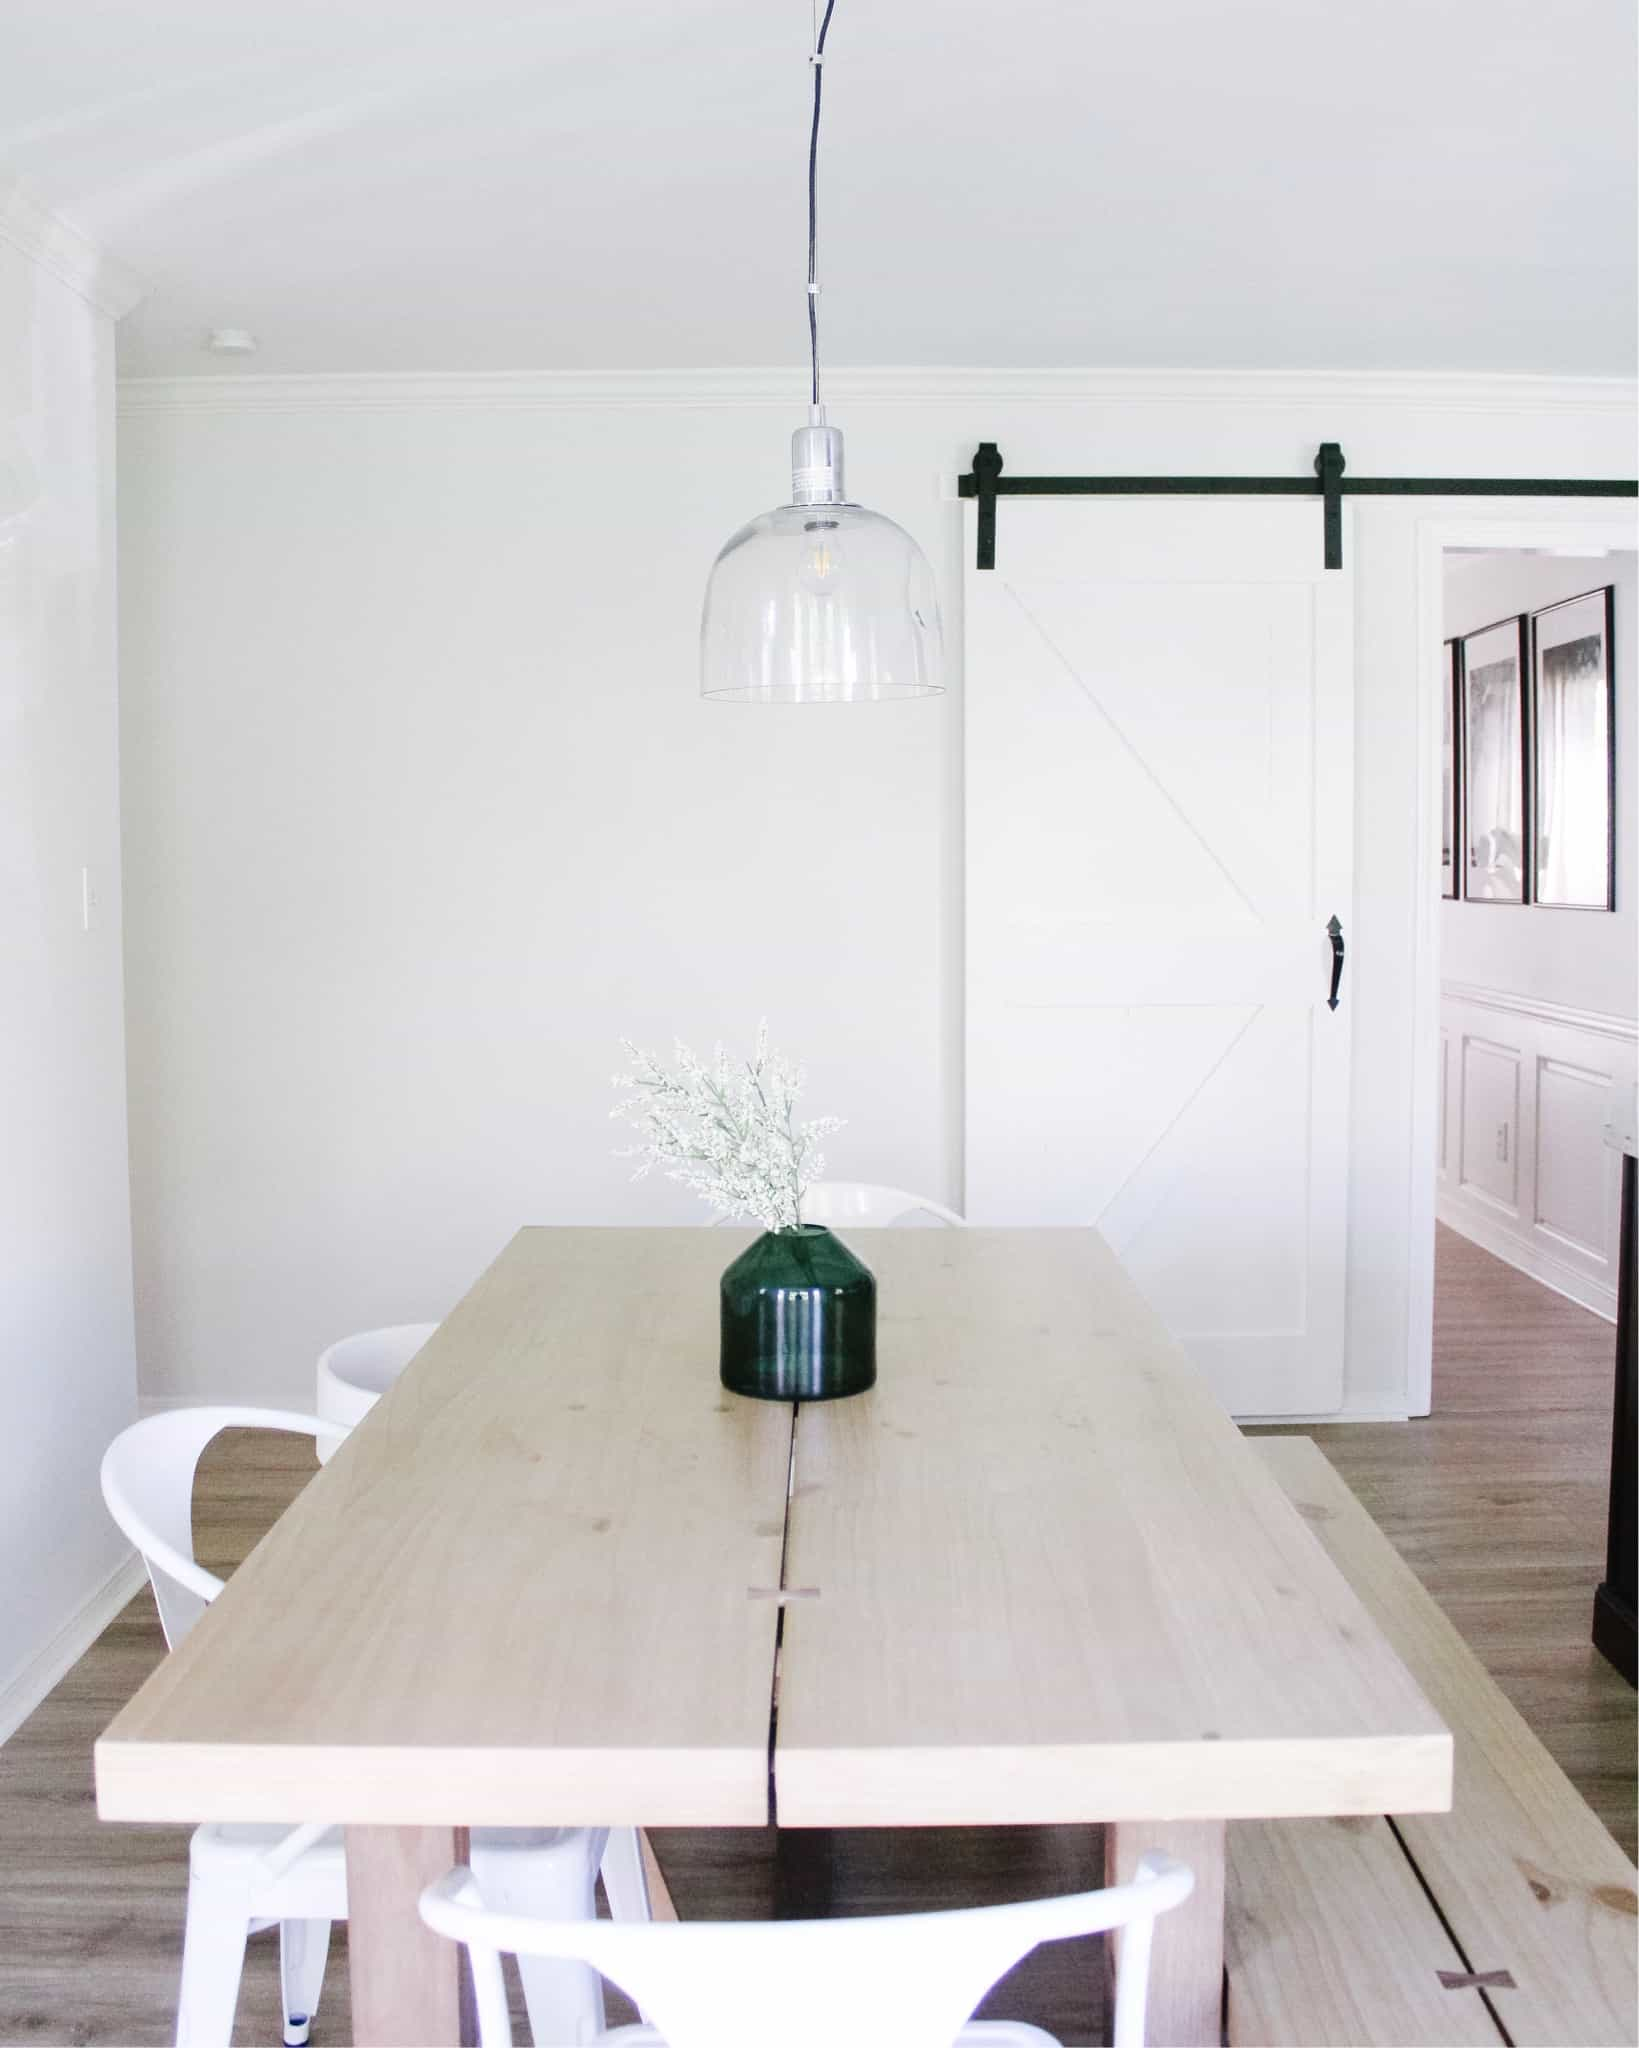 kitchen table with green vase on it and barn door